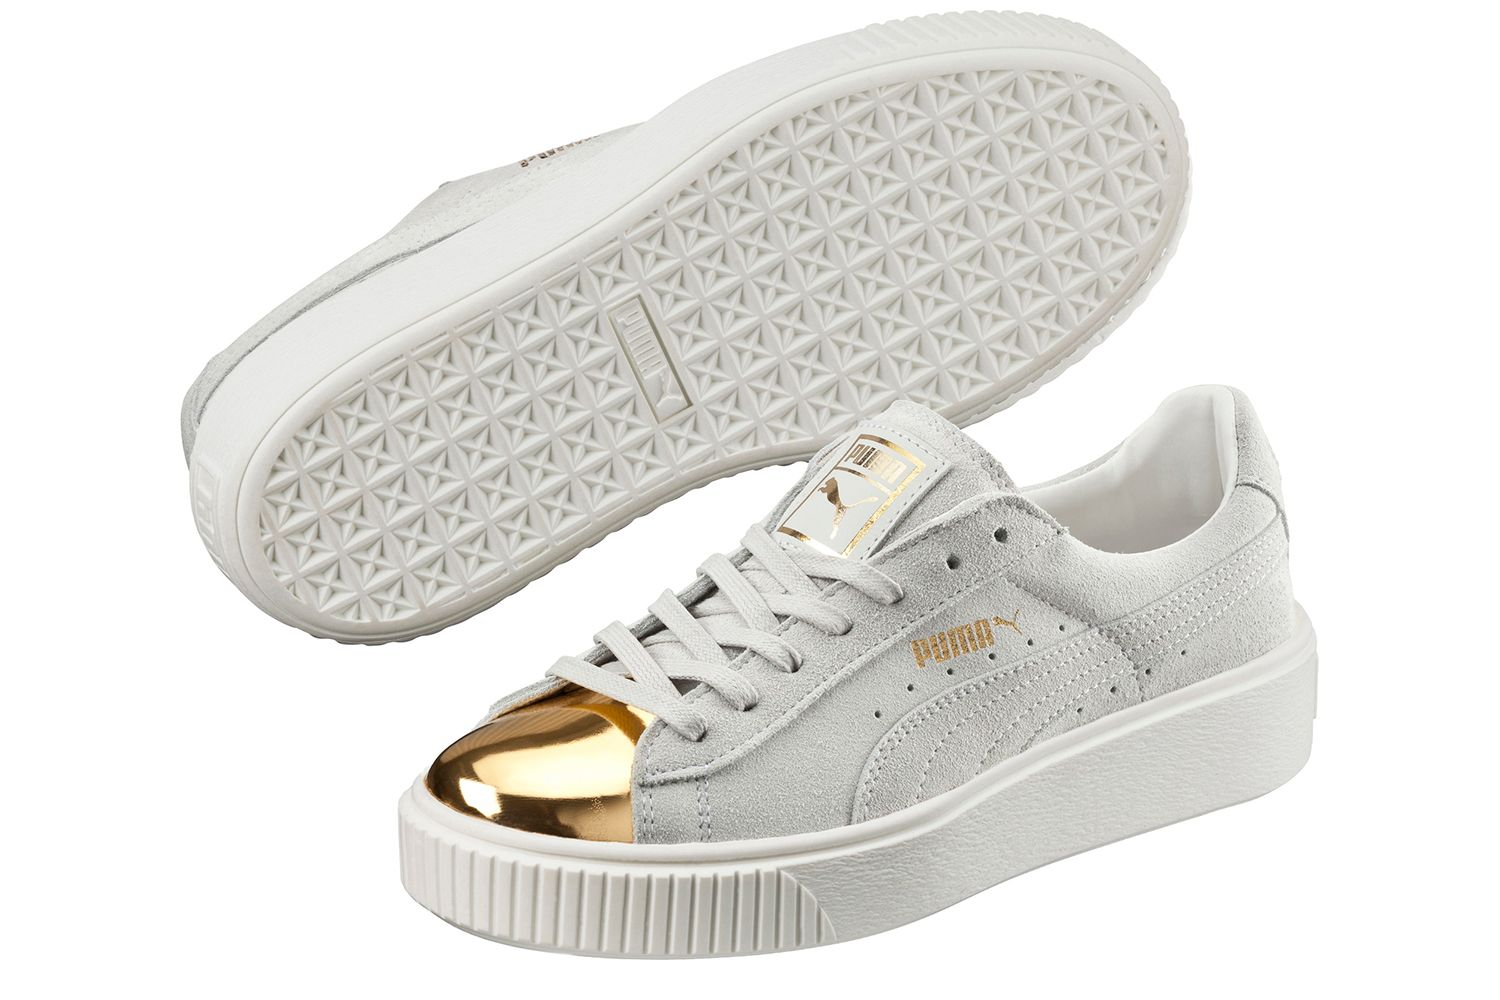 Gold Toes On The Puma Suede Platform